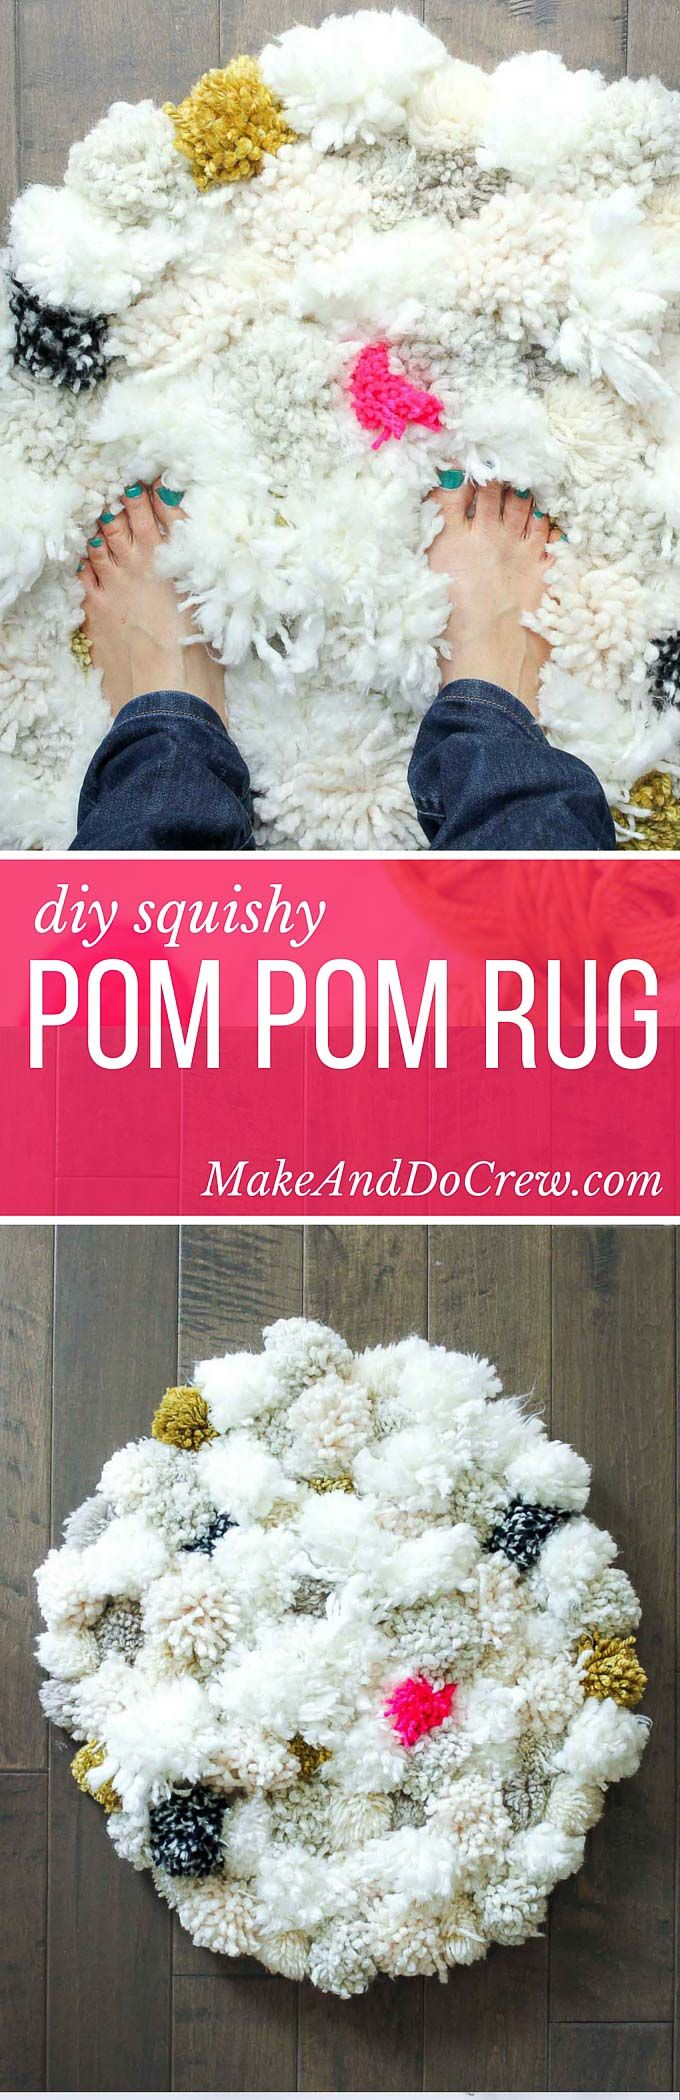 How to make a pom pom rug! This soft, scrumptiously squishy DIY pom pom rug takes very few skills to create and is a great way to use up a bunch of scrap yarn! Perfect for a bedroom, bathroom or baby nursery. Click for full tutorial. | MakeAndDoCrew.com